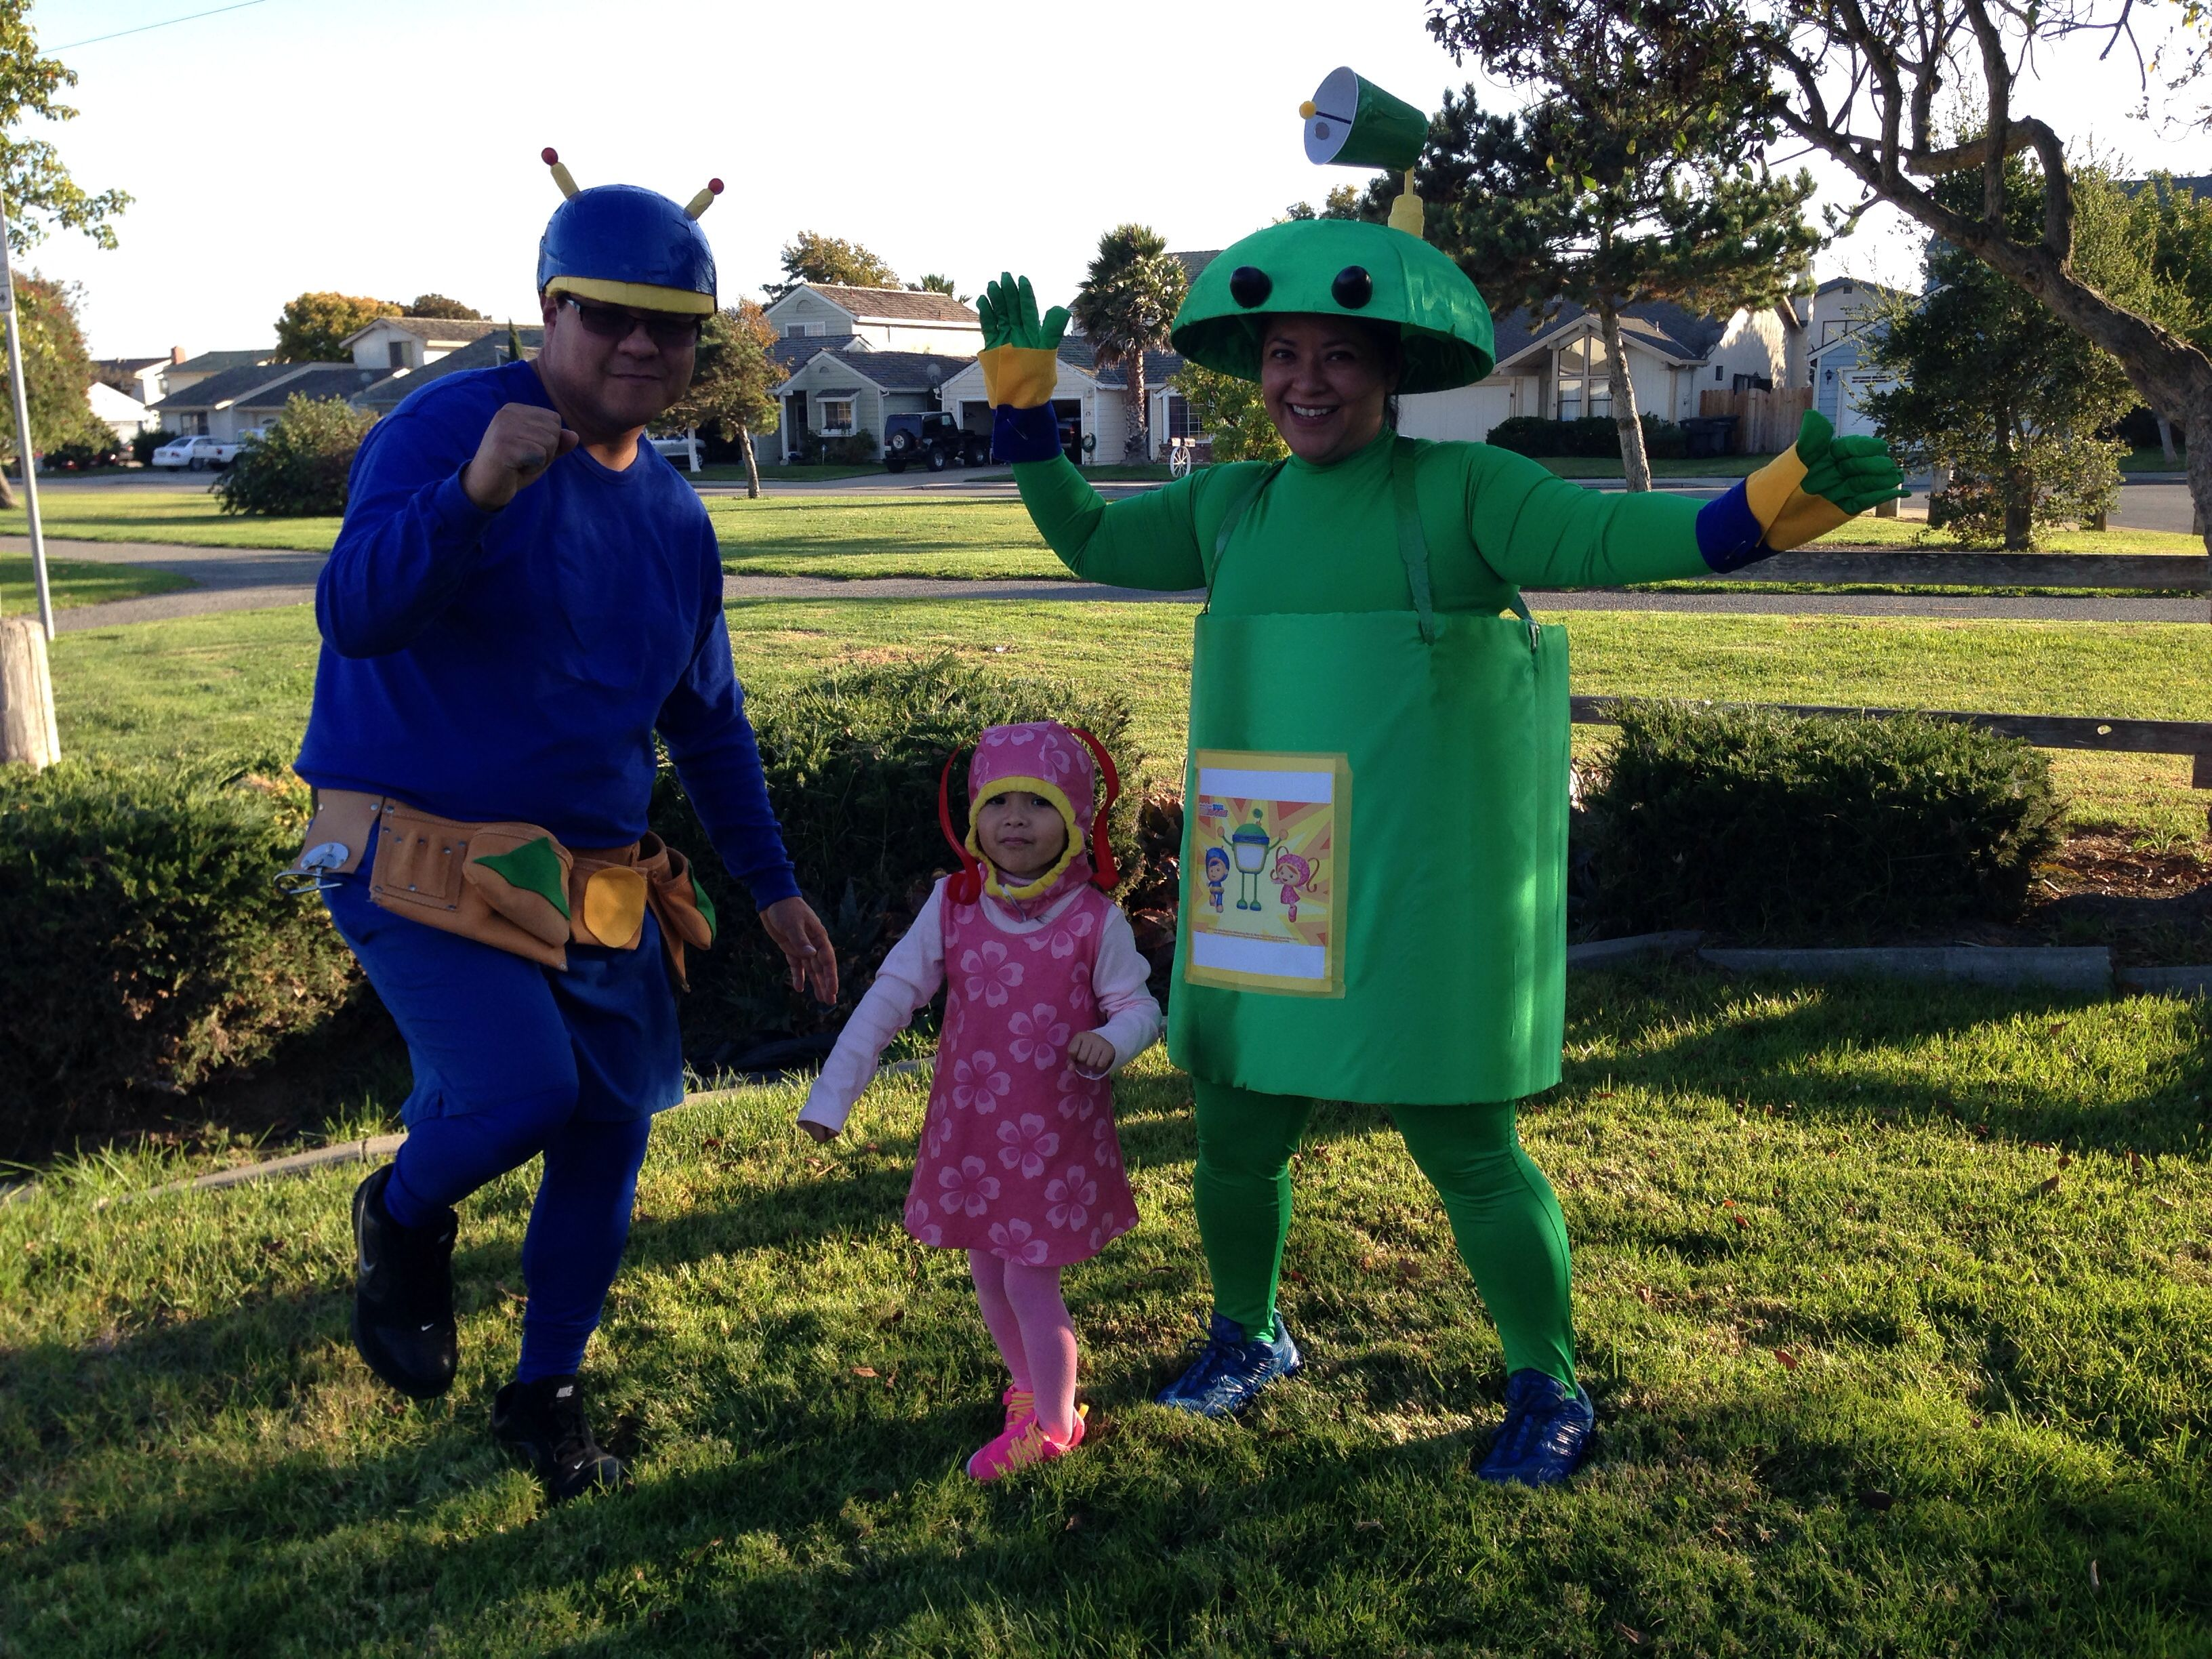 Team Umizoomi Costumes Our Halloween Costumes Pinterest Sc 1 St Gardening Flower And Vegetables & Umizoomi Halloween Costumes u0026